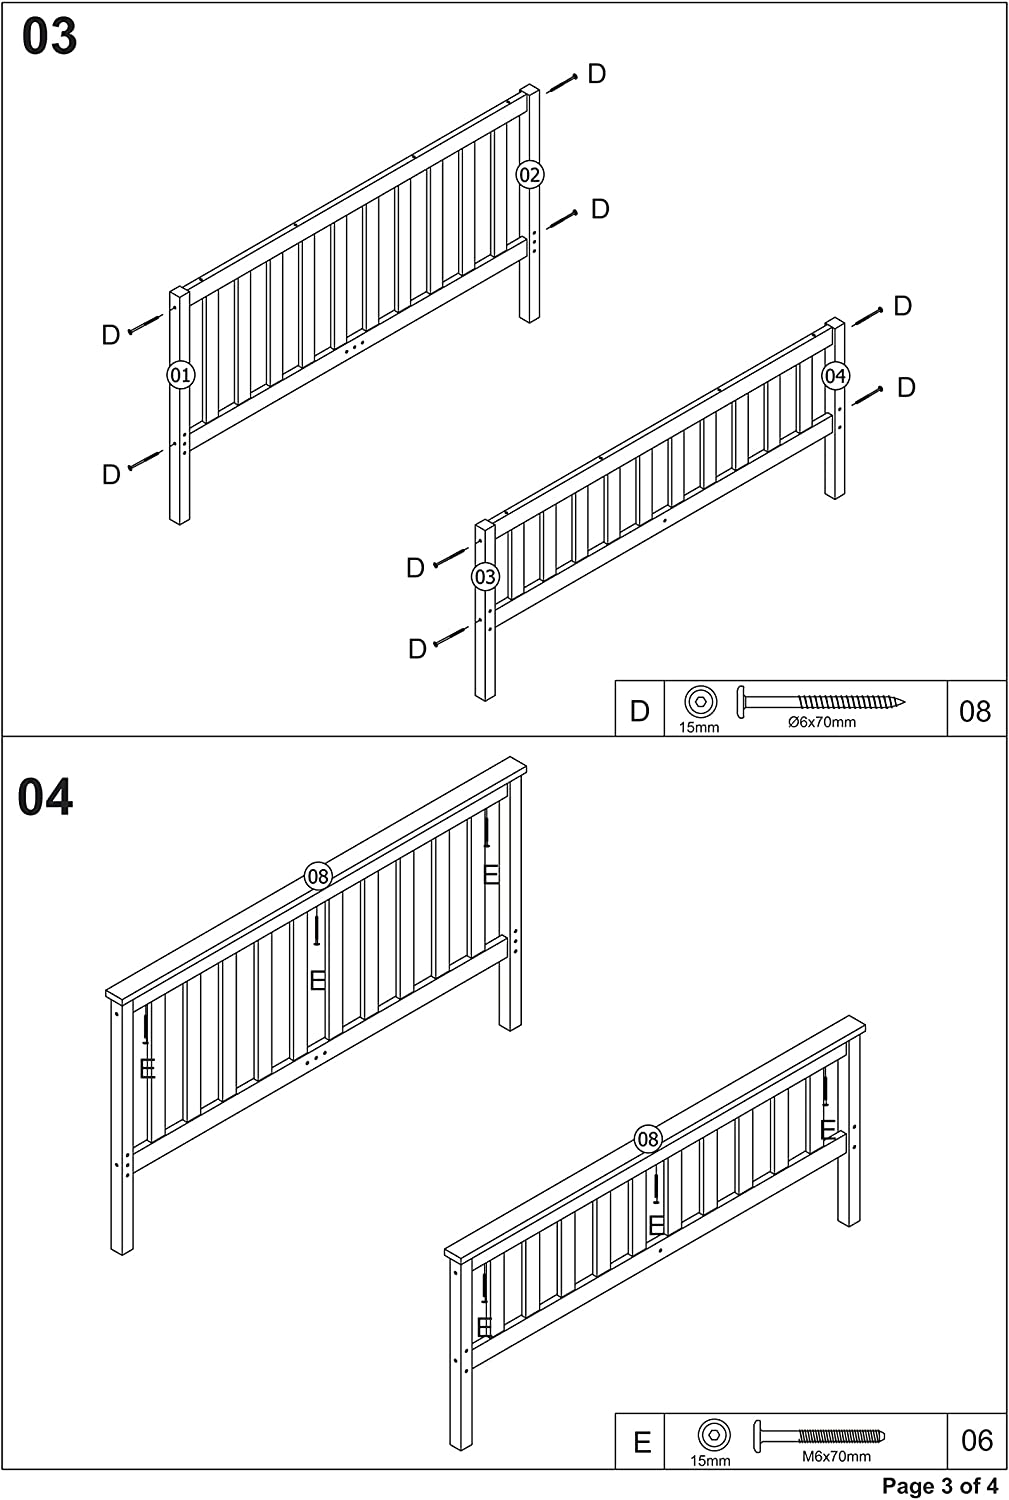 Double bed002 Pandamoto Double Bed Solid Wooden Pine Bed 46 Wooden Frame In White